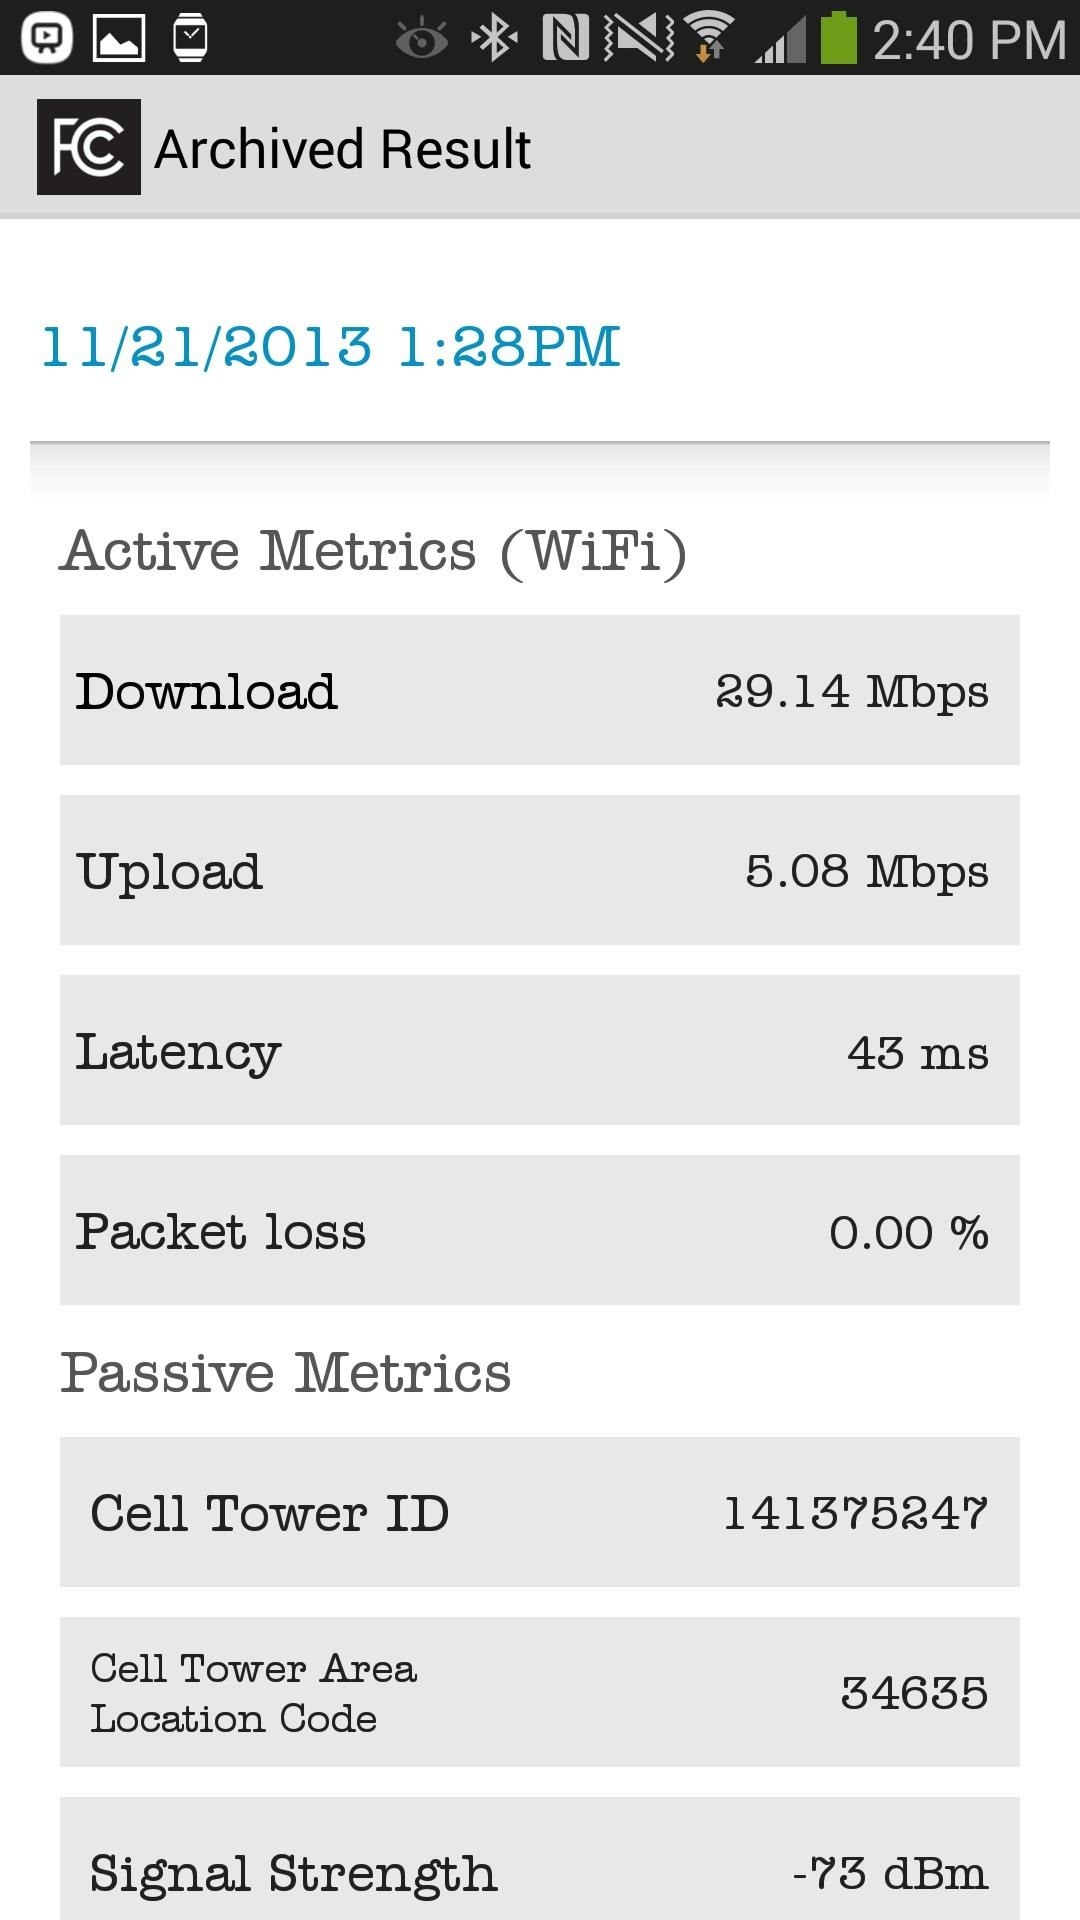 How to Measure Mobile Data & Wi-Fi Speeds on Your Samsung Galaxy Note 2 or Note 3